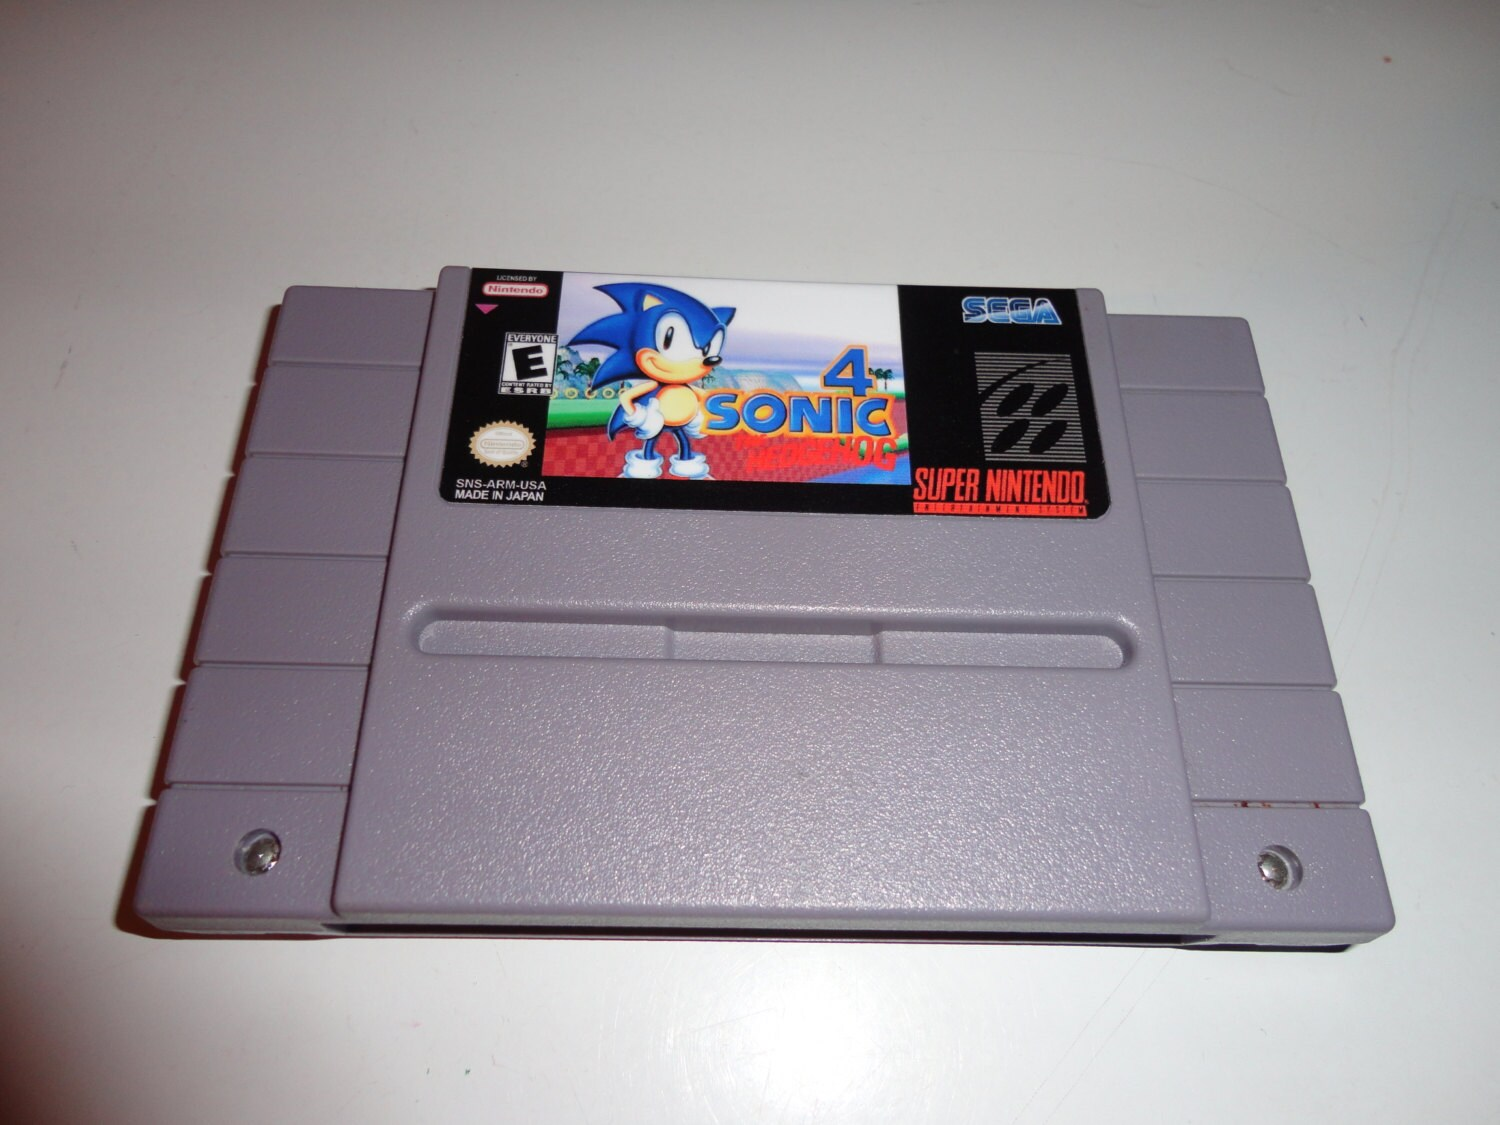 Sonic The Hedgehog 4 Snes Reproductoin Cart Super Nintendo Etsy